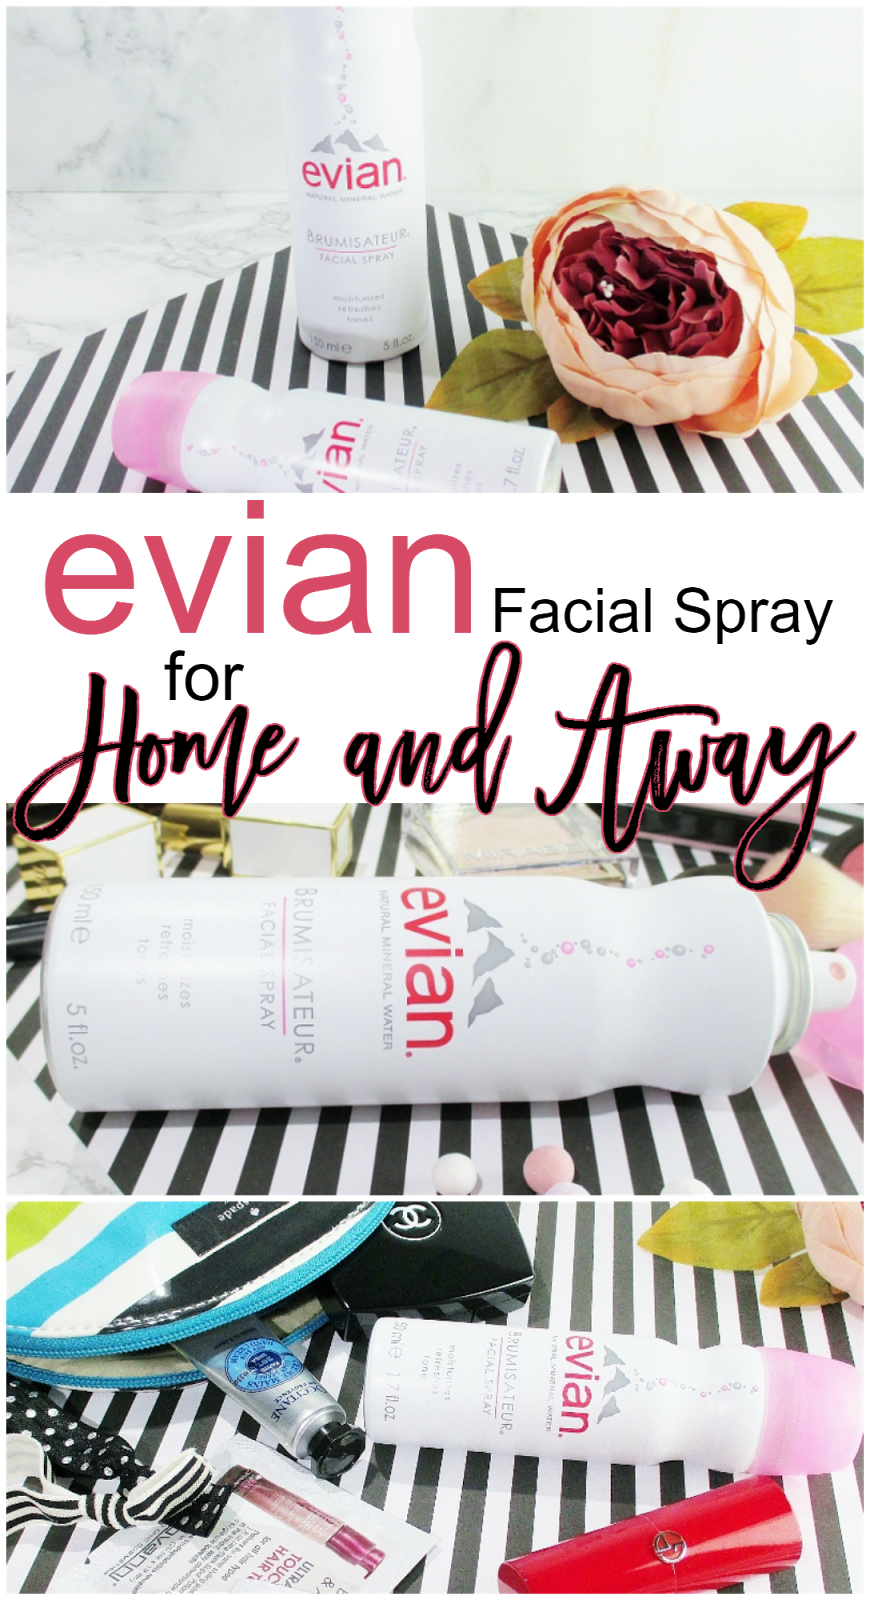 evian-natural-mineral-facial-spray-for-home-and-away-5